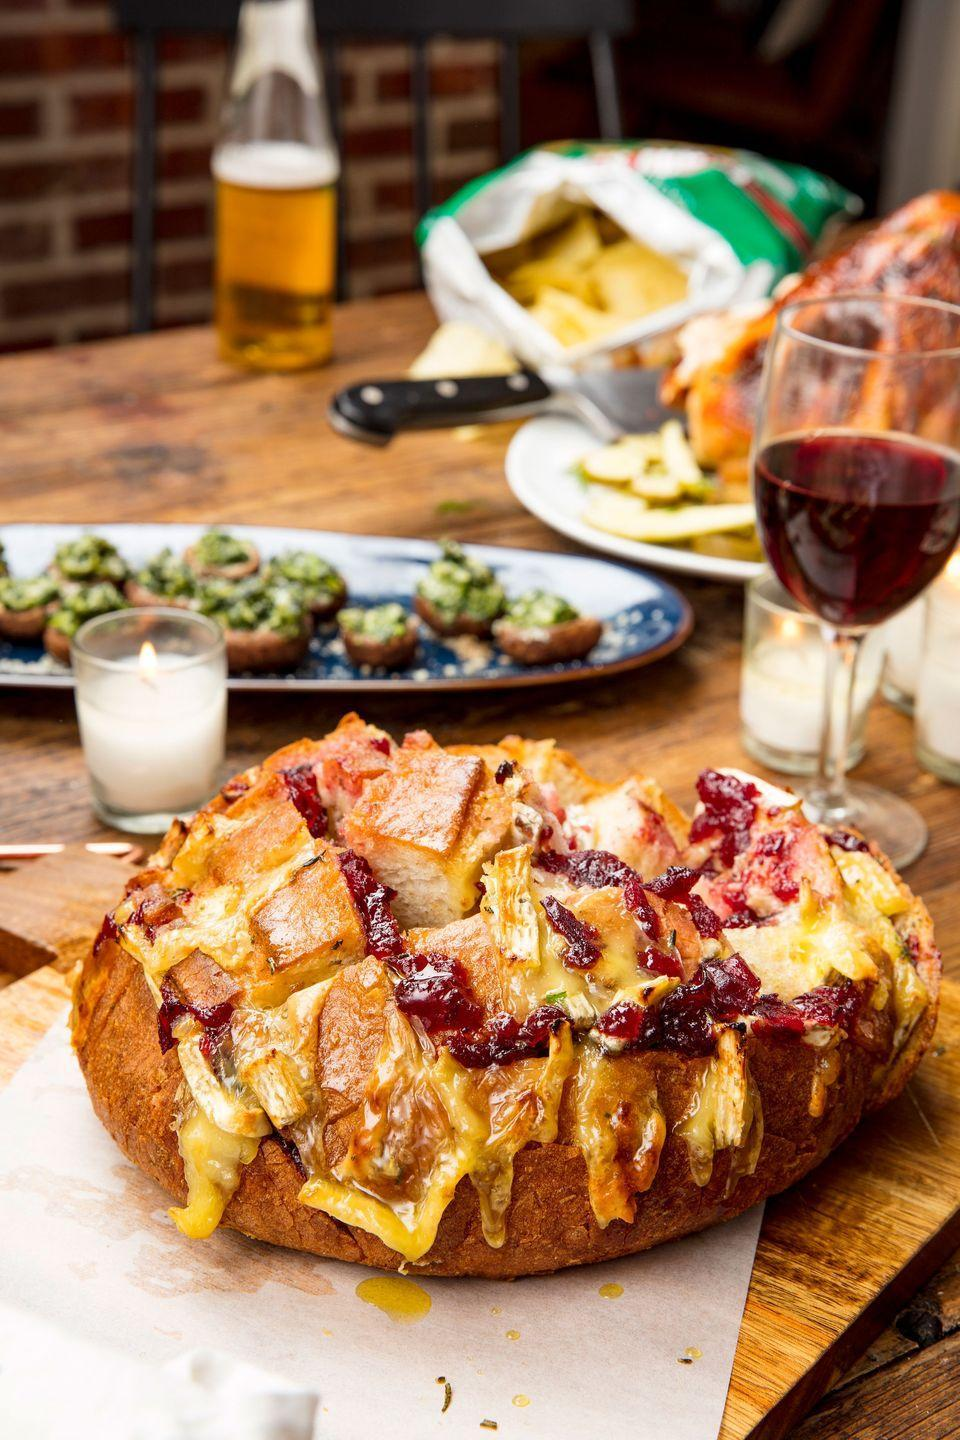 "<p>Pull-apart bread reaches a whole new level.</p><p>Get the recipe from <a href=""https://www.delish.com/cooking/recipe-ideas/recipes/a57209/cranberry-brie-pull-apart-bread-recipe/"" rel=""nofollow noopener"" target=""_blank"" data-ylk=""slk:Delish"" class=""link rapid-noclick-resp"">Delish</a>.</p>"